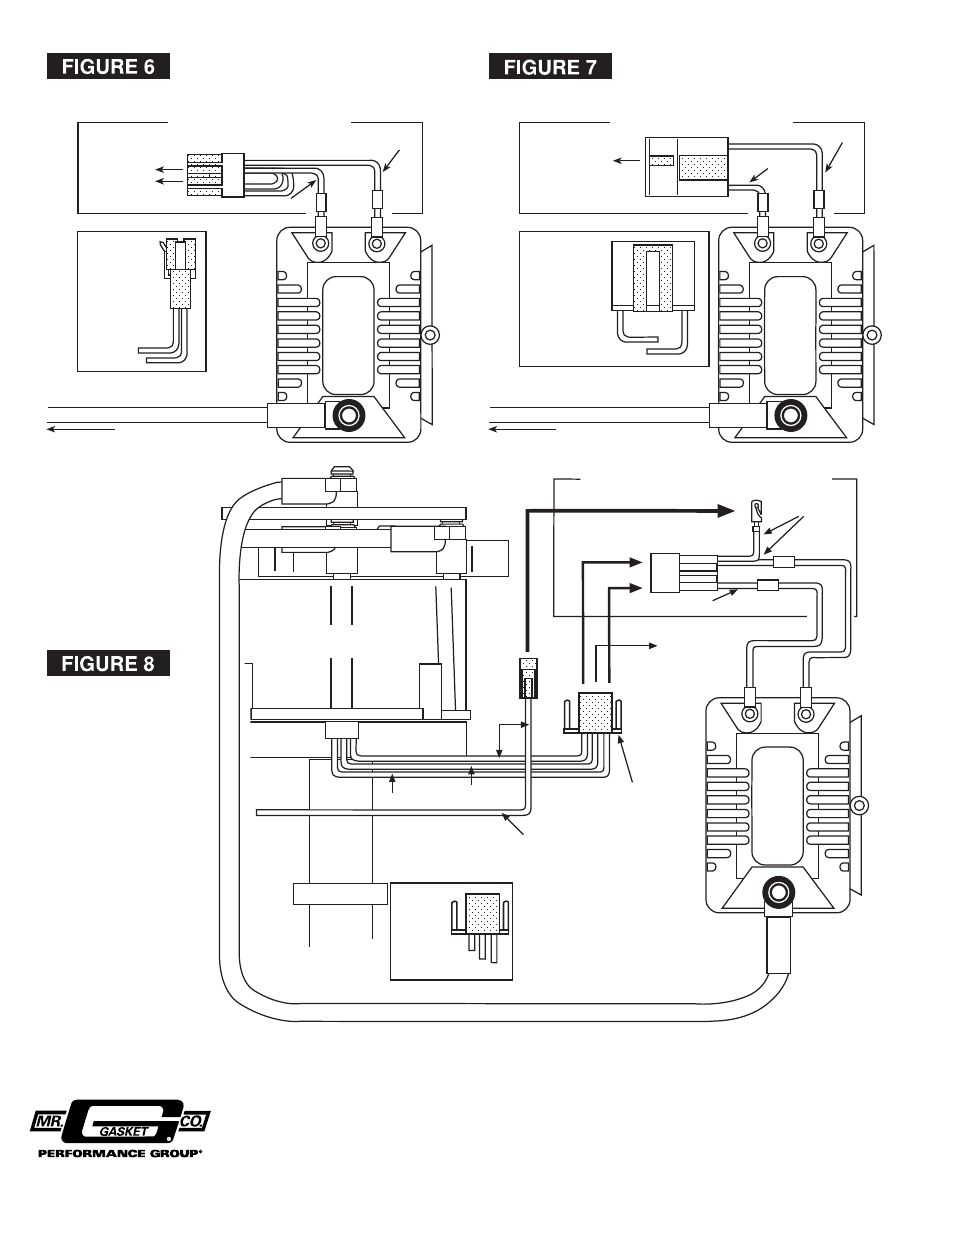 Mallory Promaster Wiring Diagram | Online Wiring Diagram on